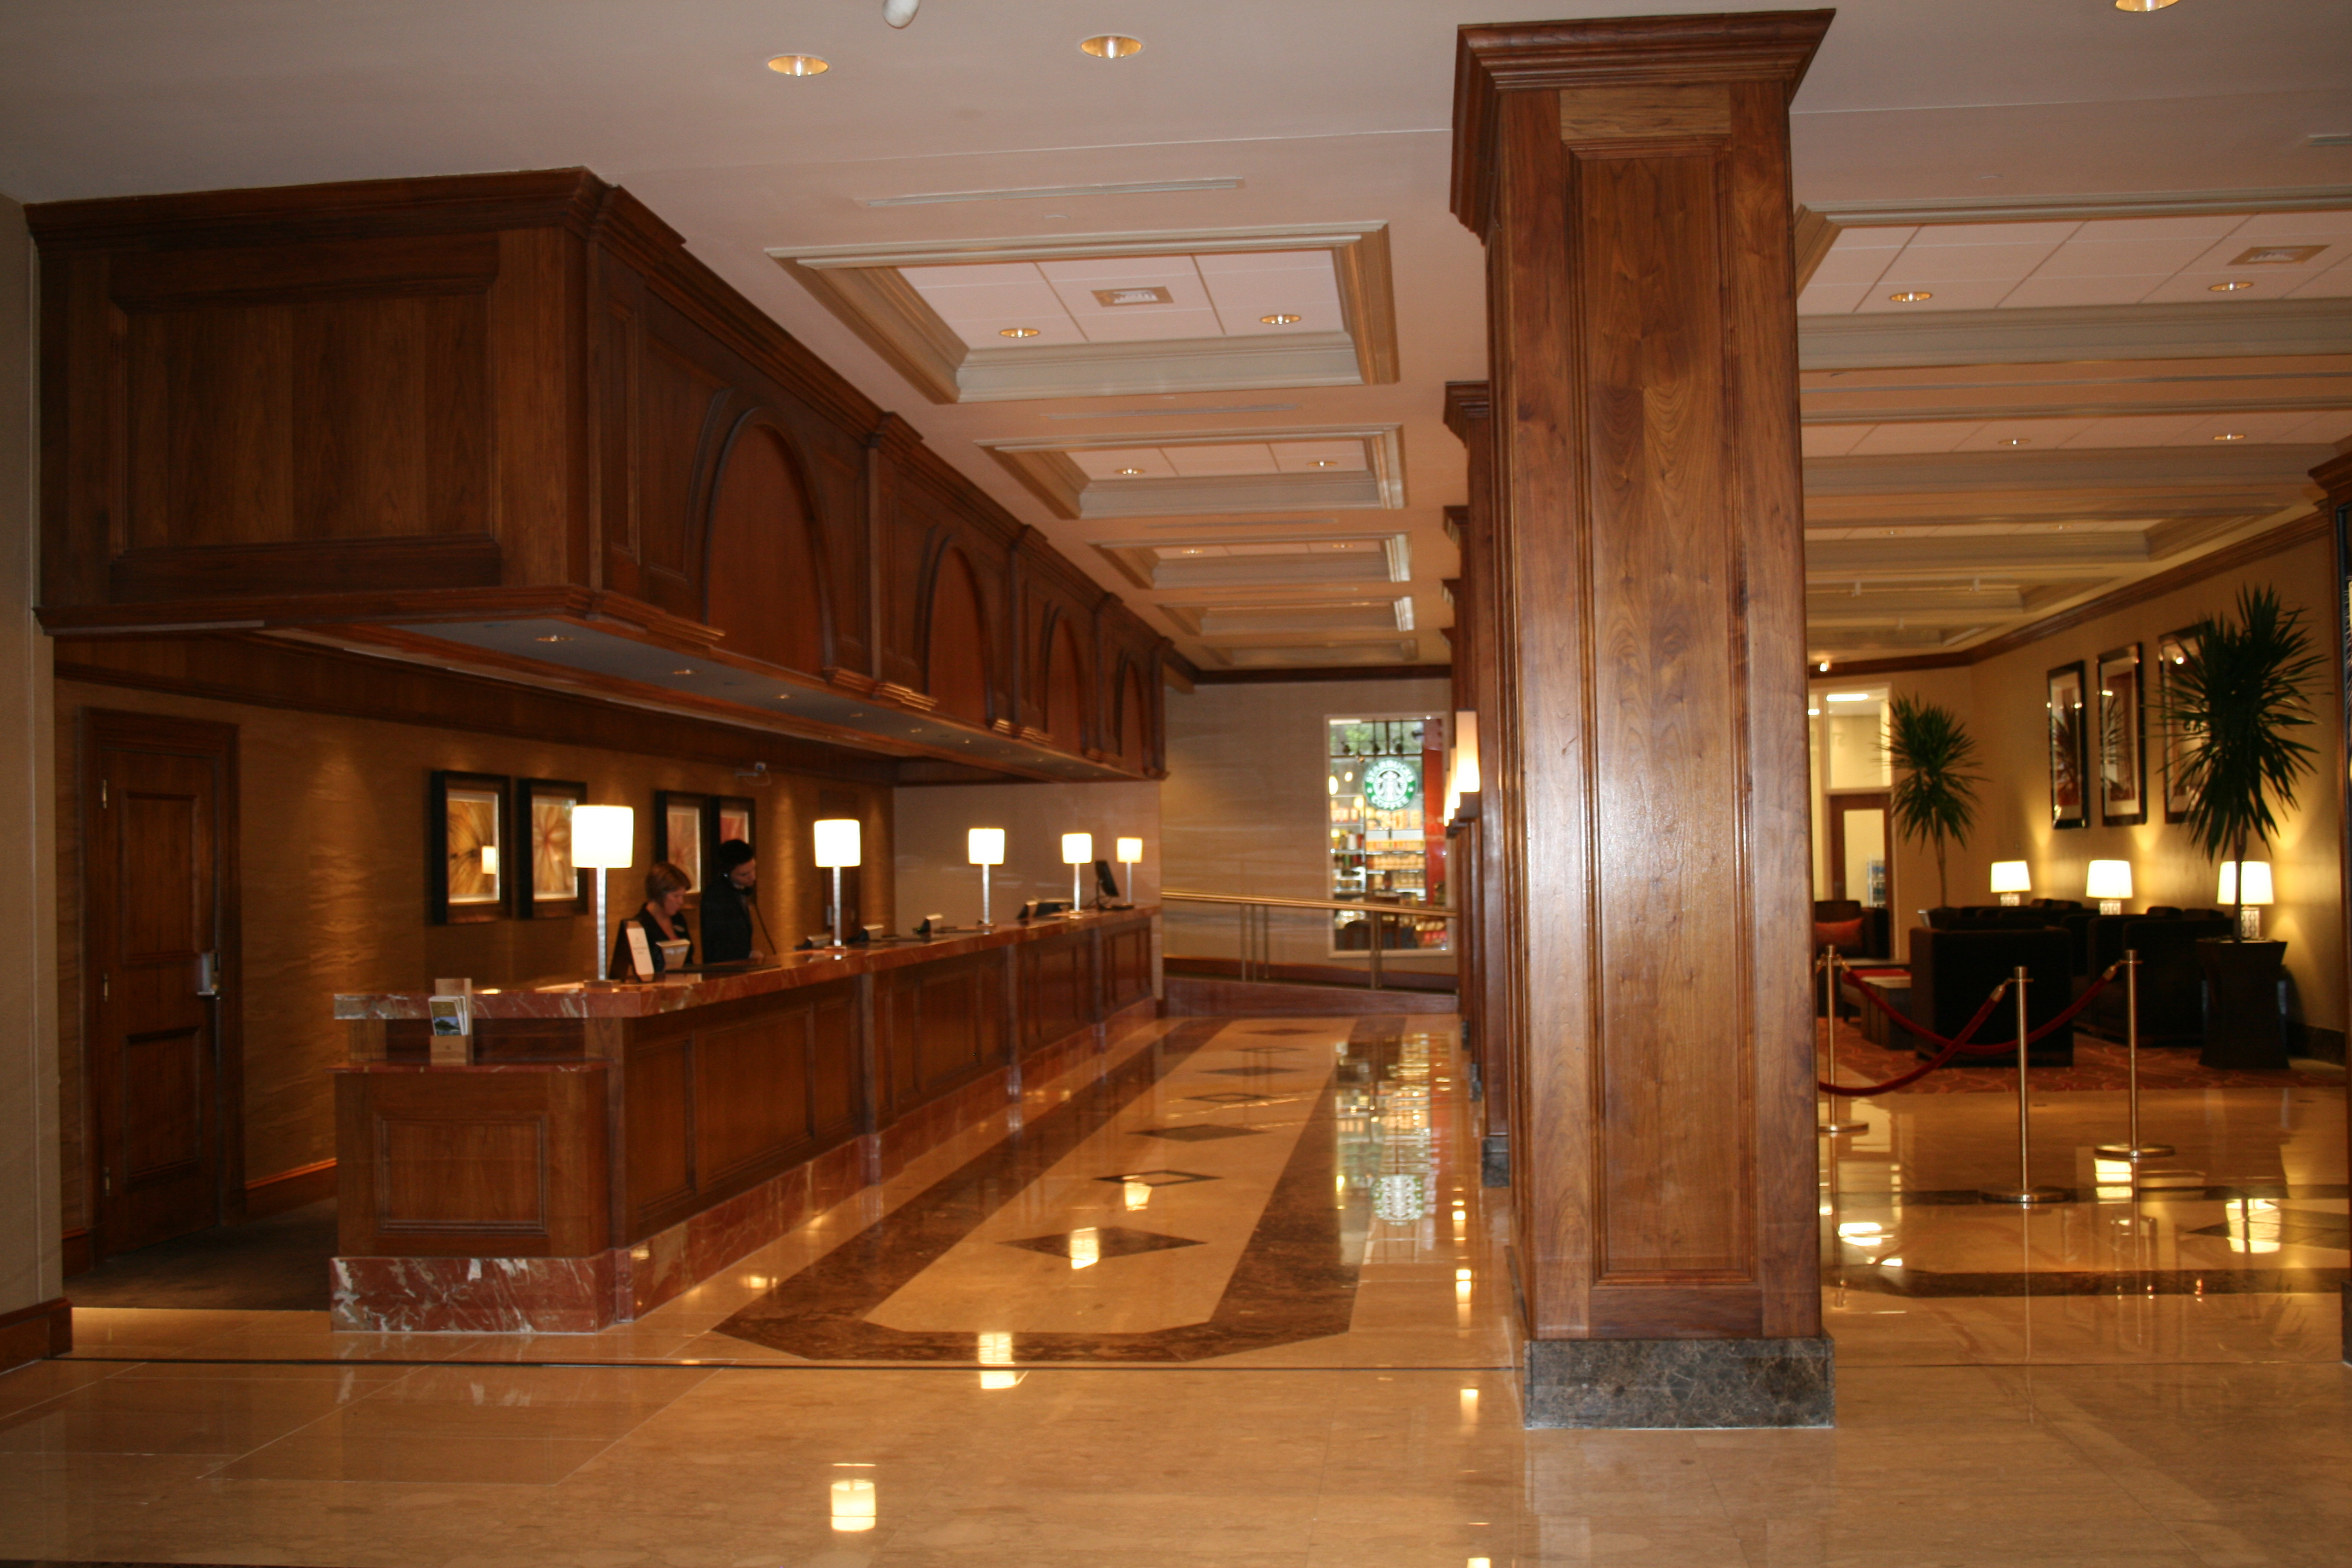 New Lobby and Front Desk